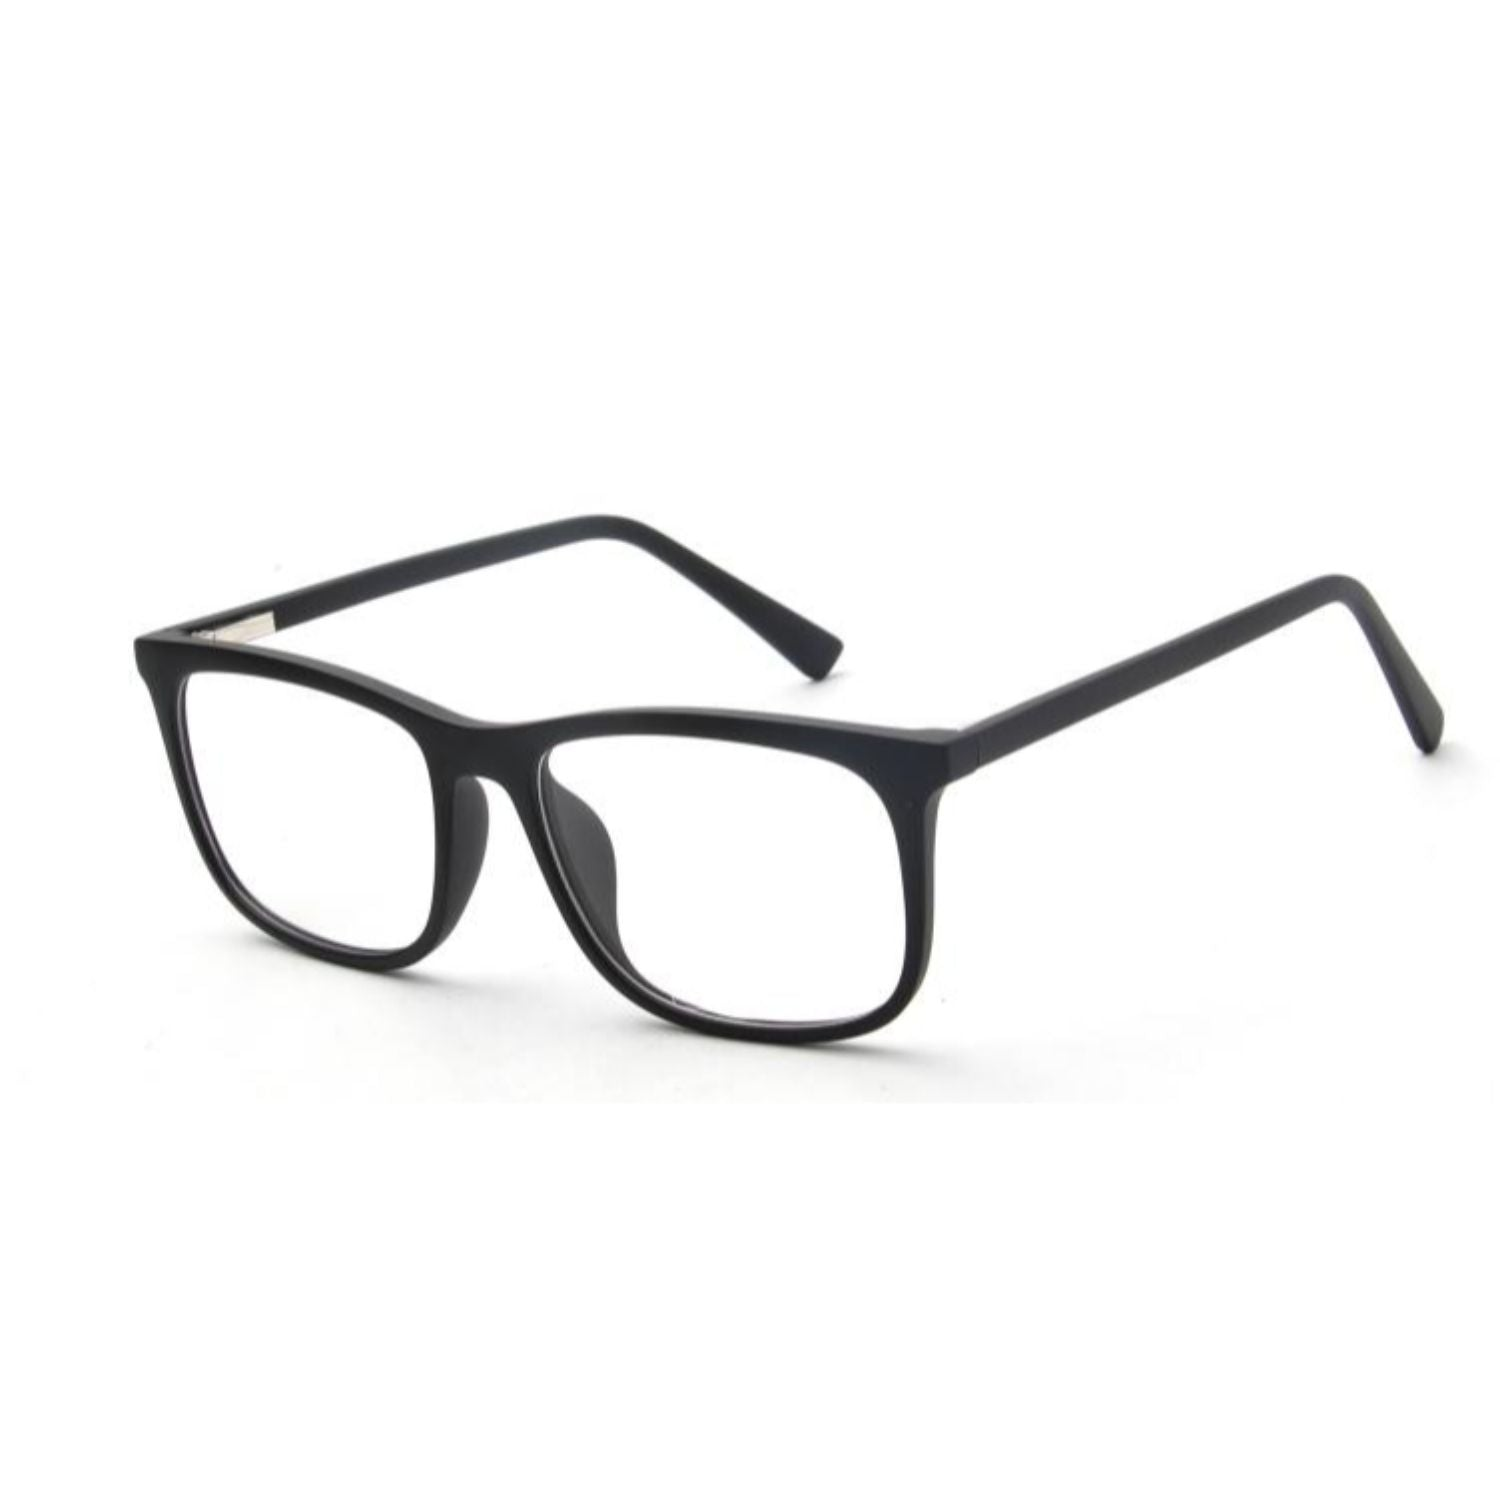 OTR33 - Square Classic Optical Glasses - Iris Fashion Inc. | Wholesale Sunglasses and Glasses